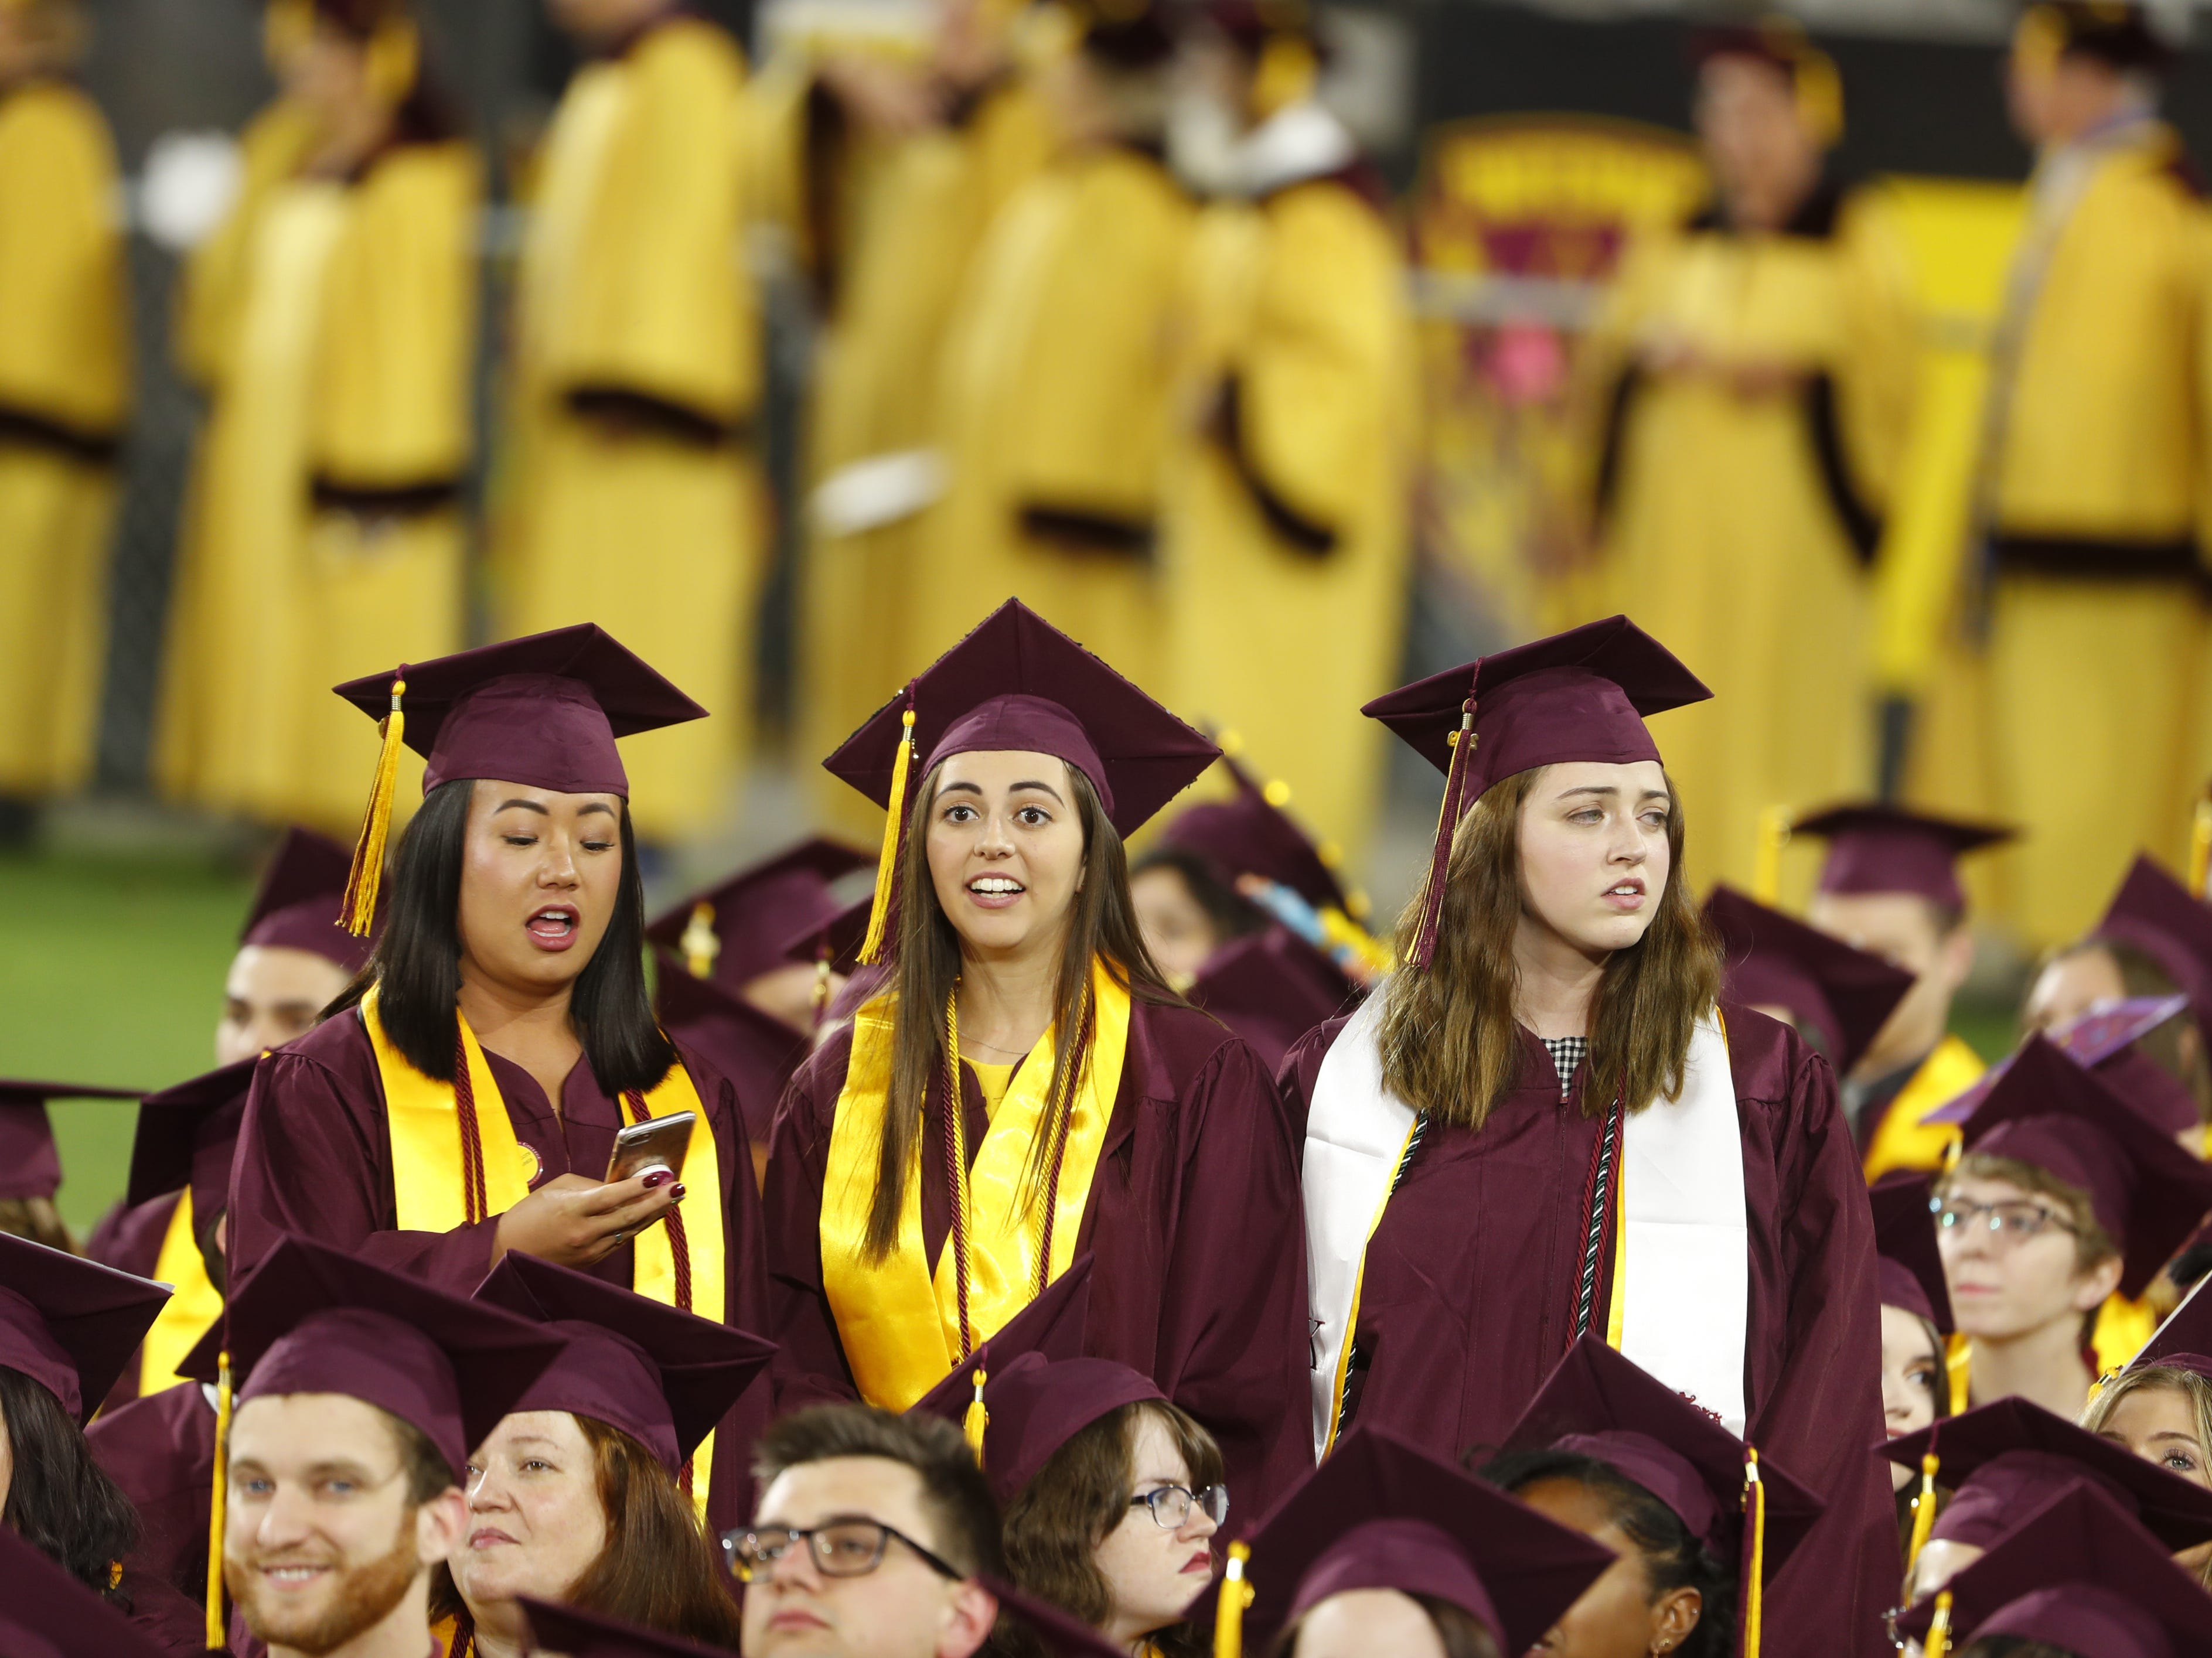 ASU students stand to see over the crowd of caps and gowns during ASU's Undergraduate Commencement at Sun Devil Stadium in Tempe, Ariz. on May 6, 2019.